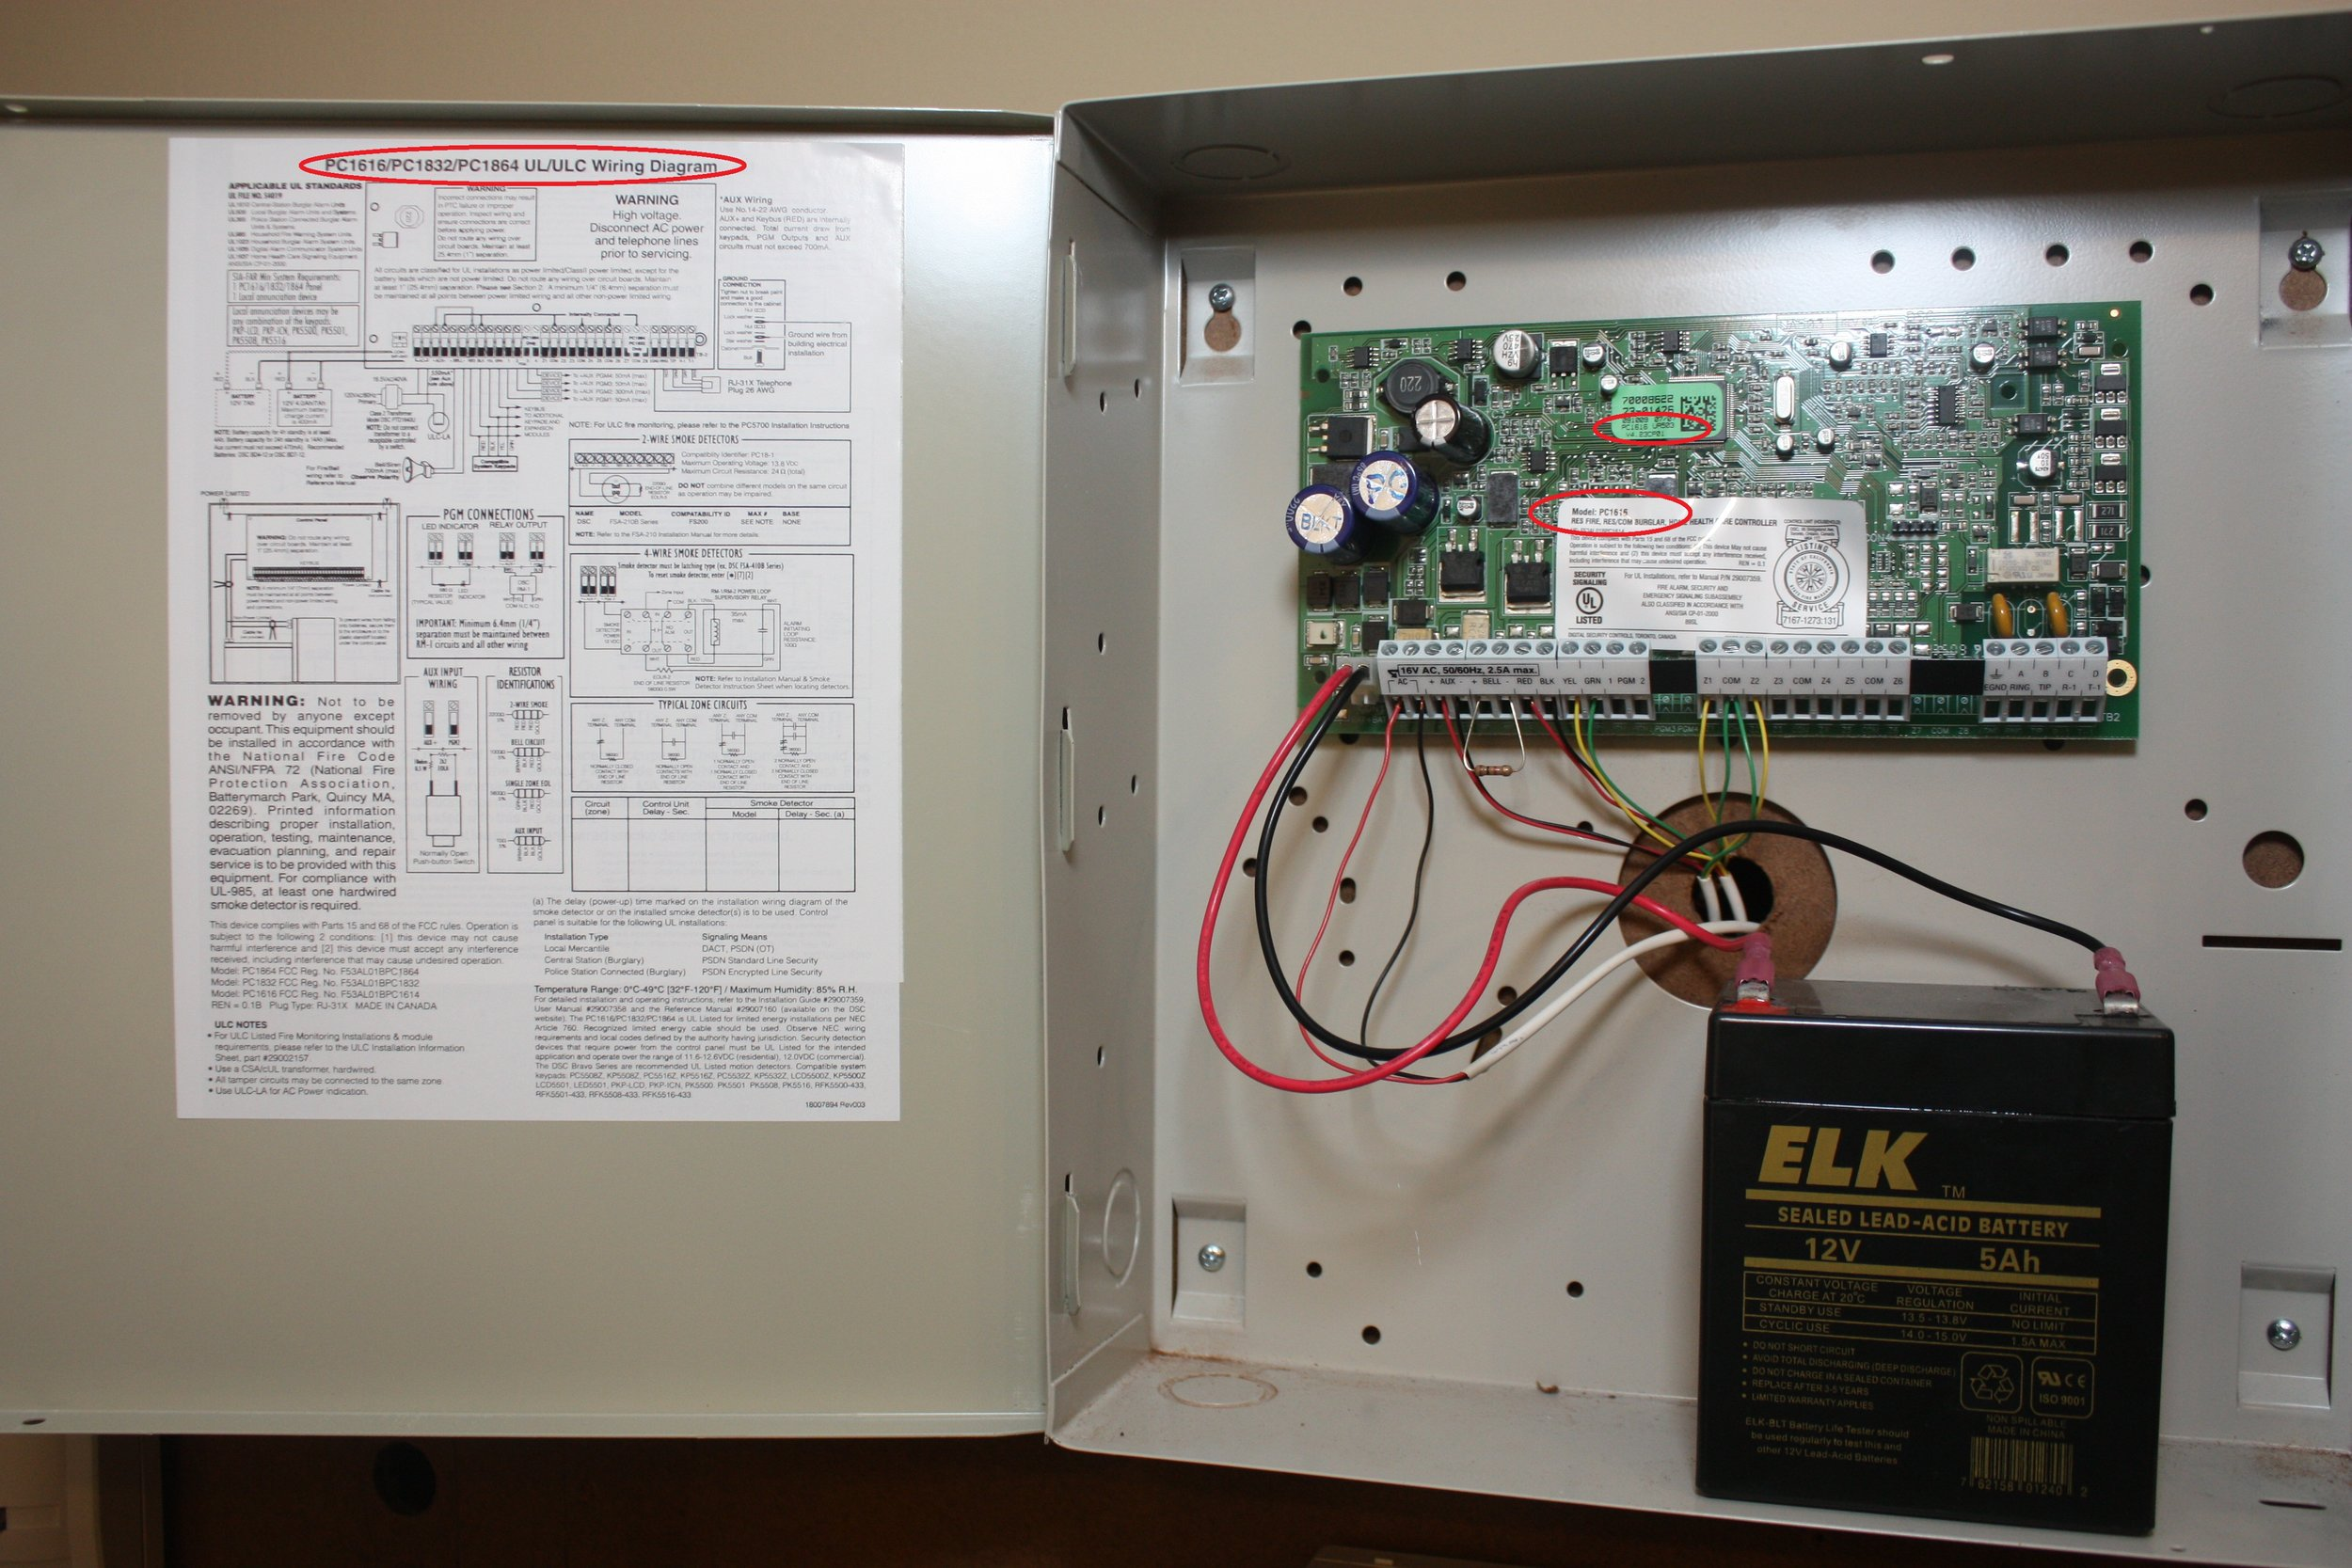 Inside the 5508 DSC LED alarm control box showing the schematic and circuit board - NCA Alarms Nashville TN